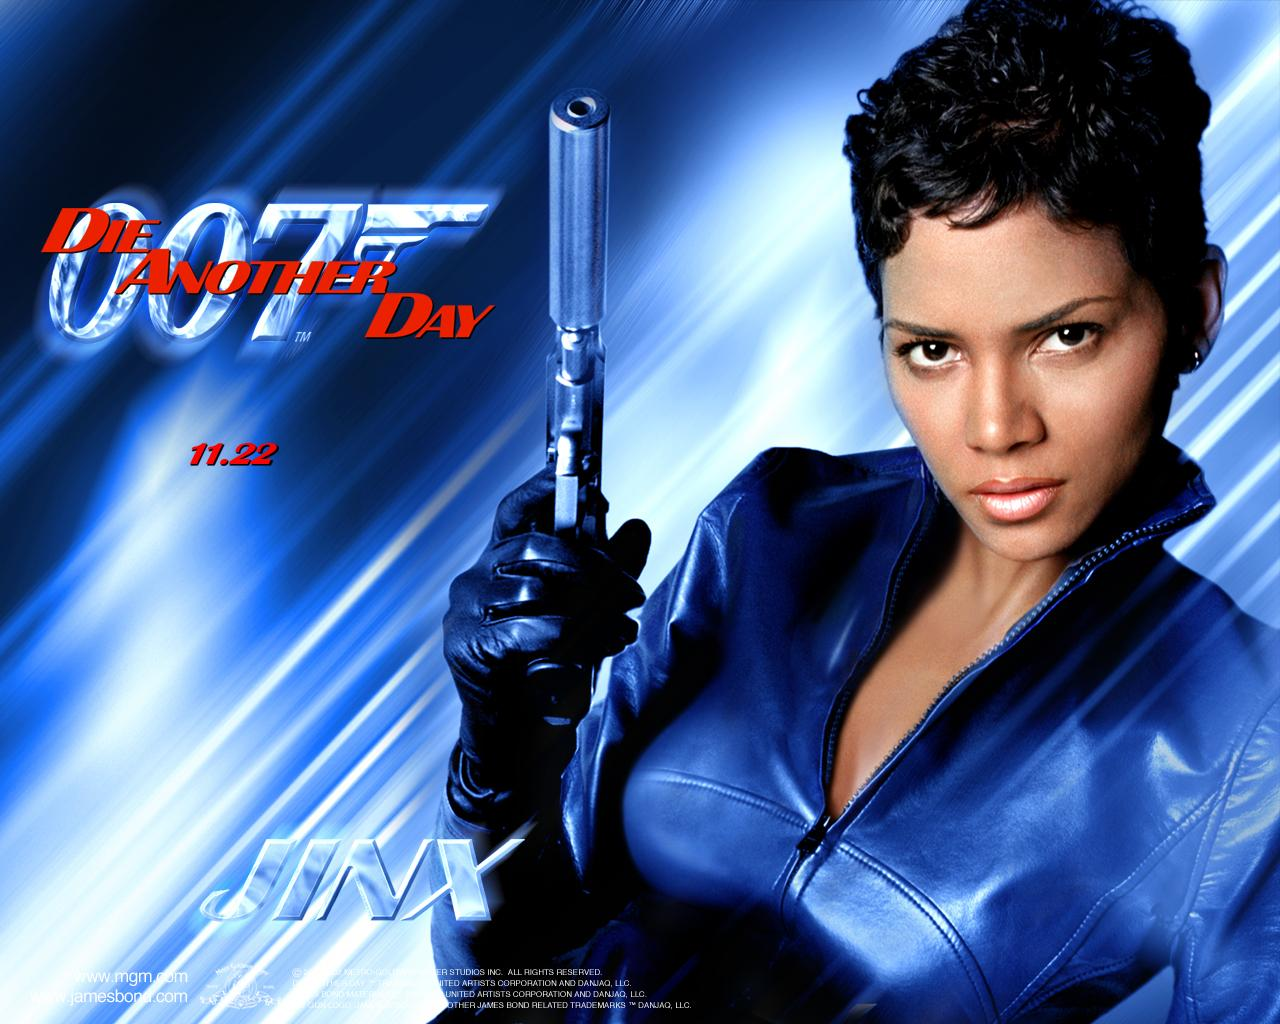 James Bond 007 - Die Another Day 2002 Morte Attendere Pierce Brosnan Halle Berry